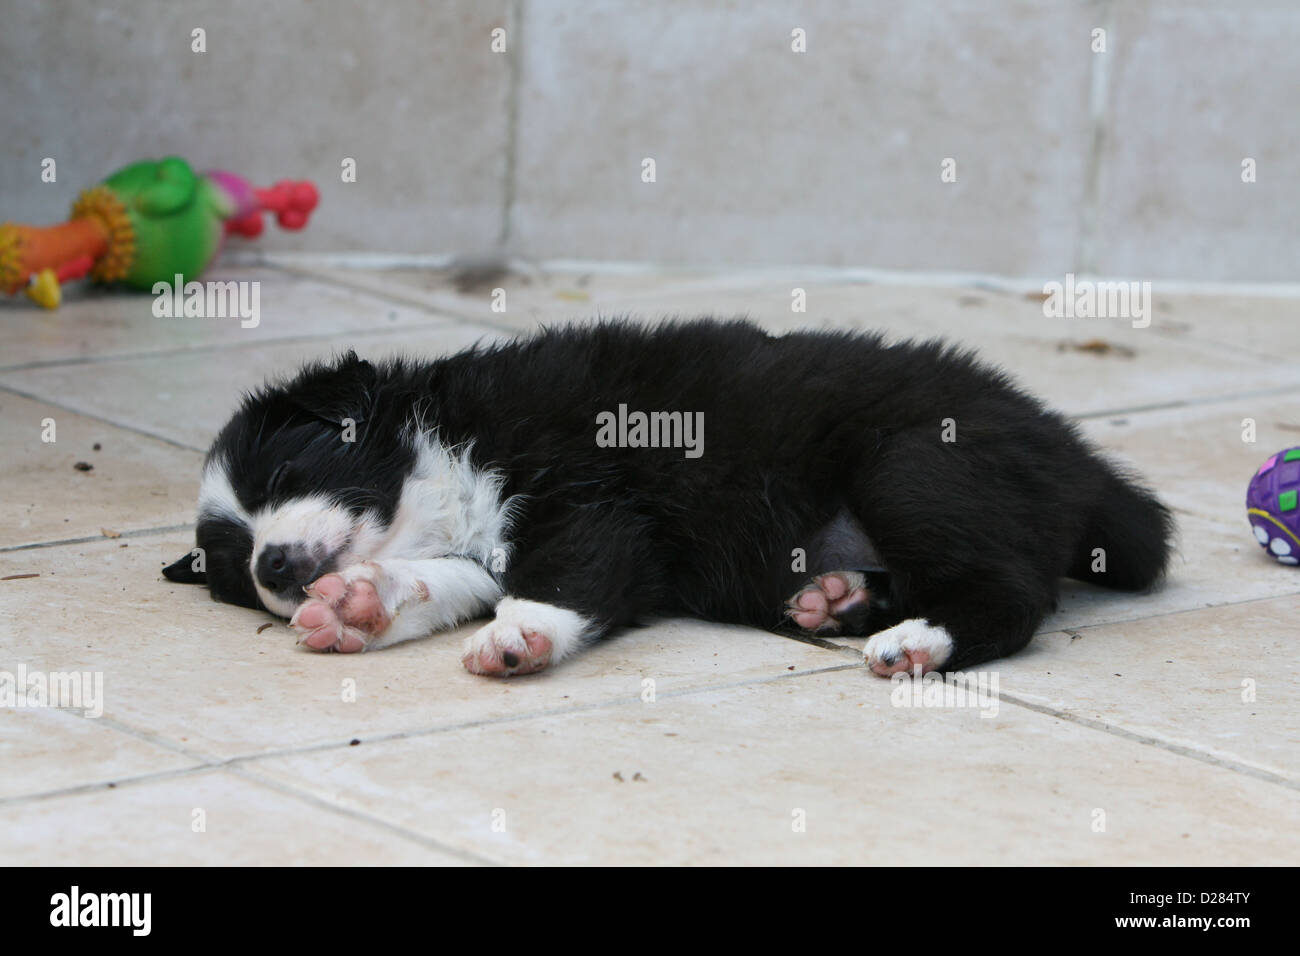 Dog Border Collie puppy sleeping on the ground - Stock Image